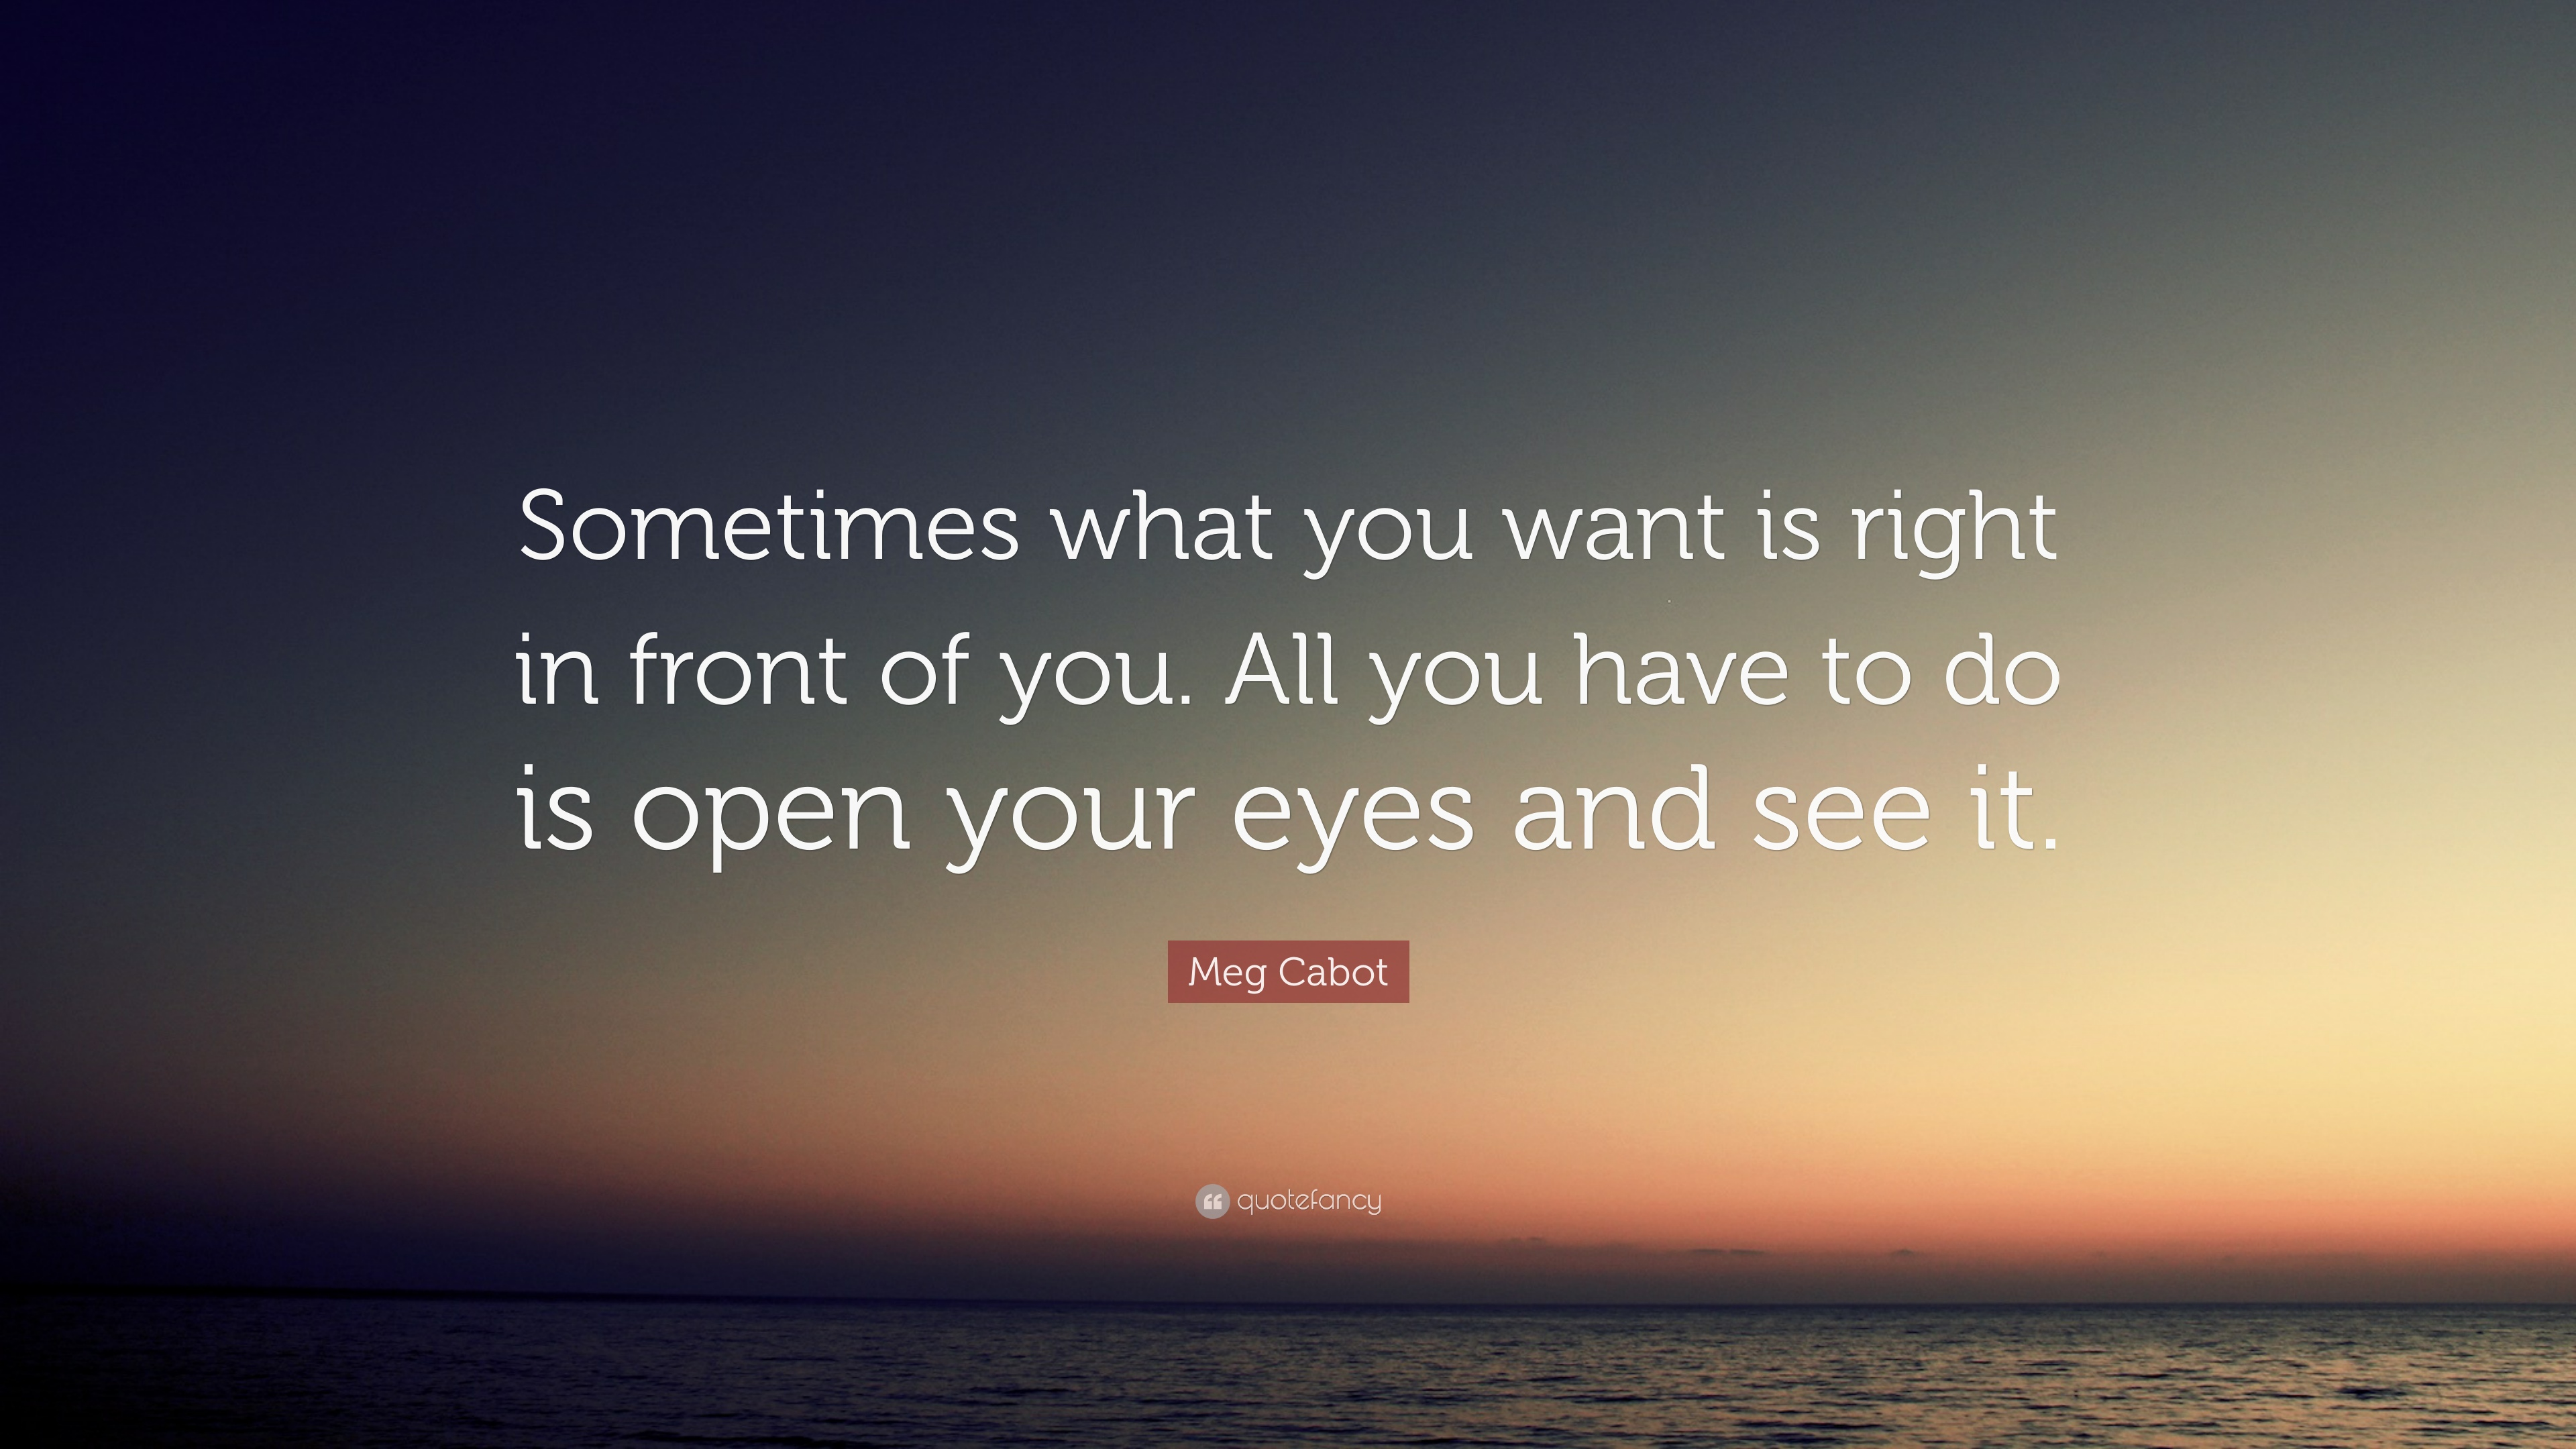 Meg Cabot Quote: U201cSometimes What You Want Is Right In Front Of You.